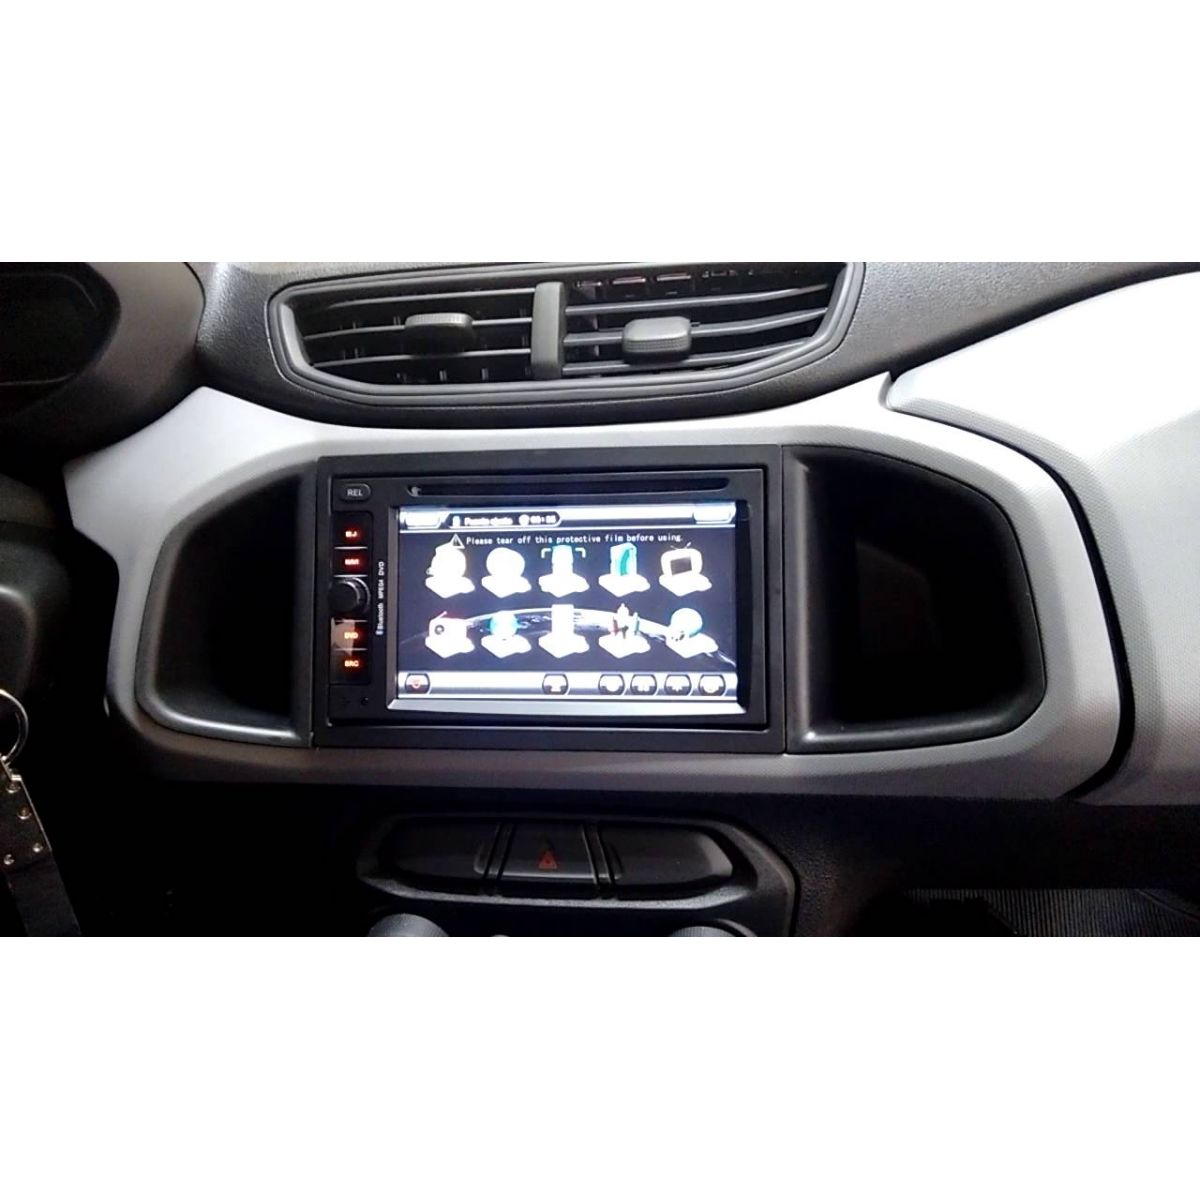 Central Multimídia Chevrolet Cobalt / Onix / Spin LT LS 2013 á 2017 Com DVD GPS Mapa Bluetooth MP3 USB Ipod SD Card Câmera Ré Grátis